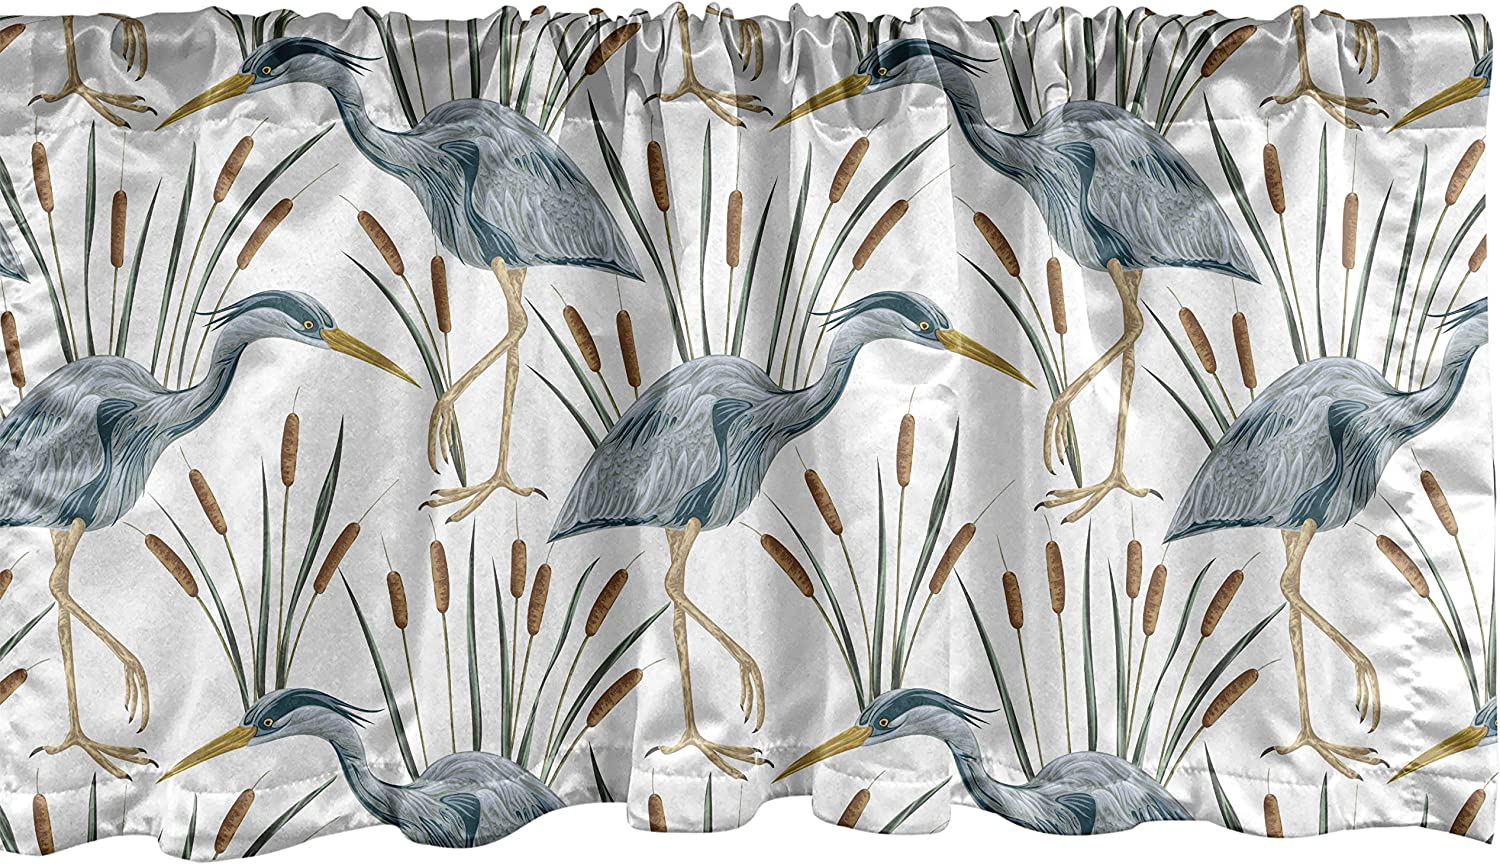 Lunarable Swamp Window Valance, Blue Grey Heron Birds and Bulrush Water Foliage Growth Wilderness Tropical Lands, Curtain Valance for Kitchen Bedroom Decor with Rod Pocket, 54